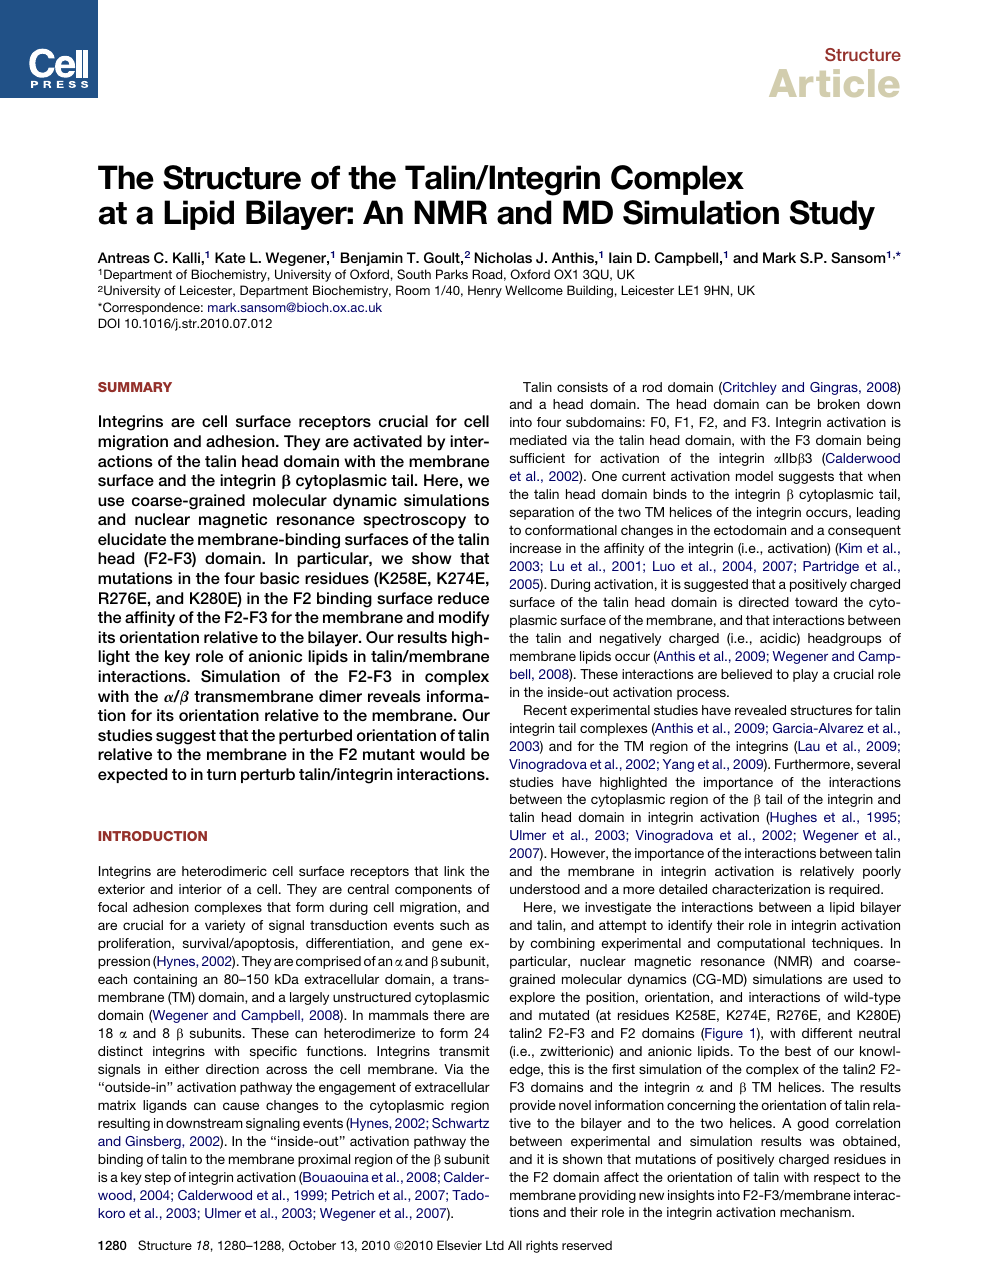 The Structure of the Talin/Integrin Complex at a Lipid Bilayer: An